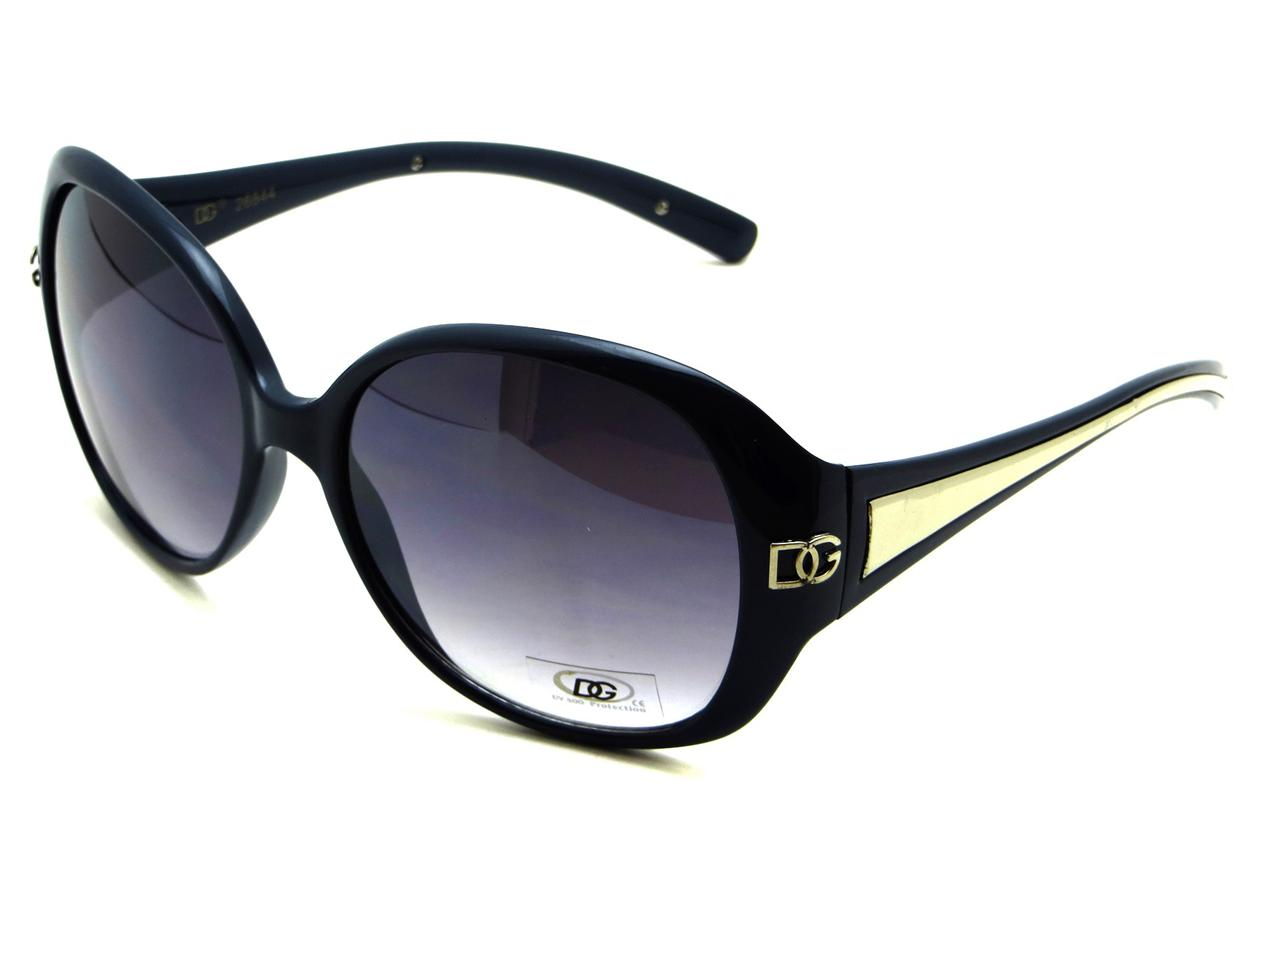 Buy Sunglasses Online  Prescription Sunglasses amp Frames